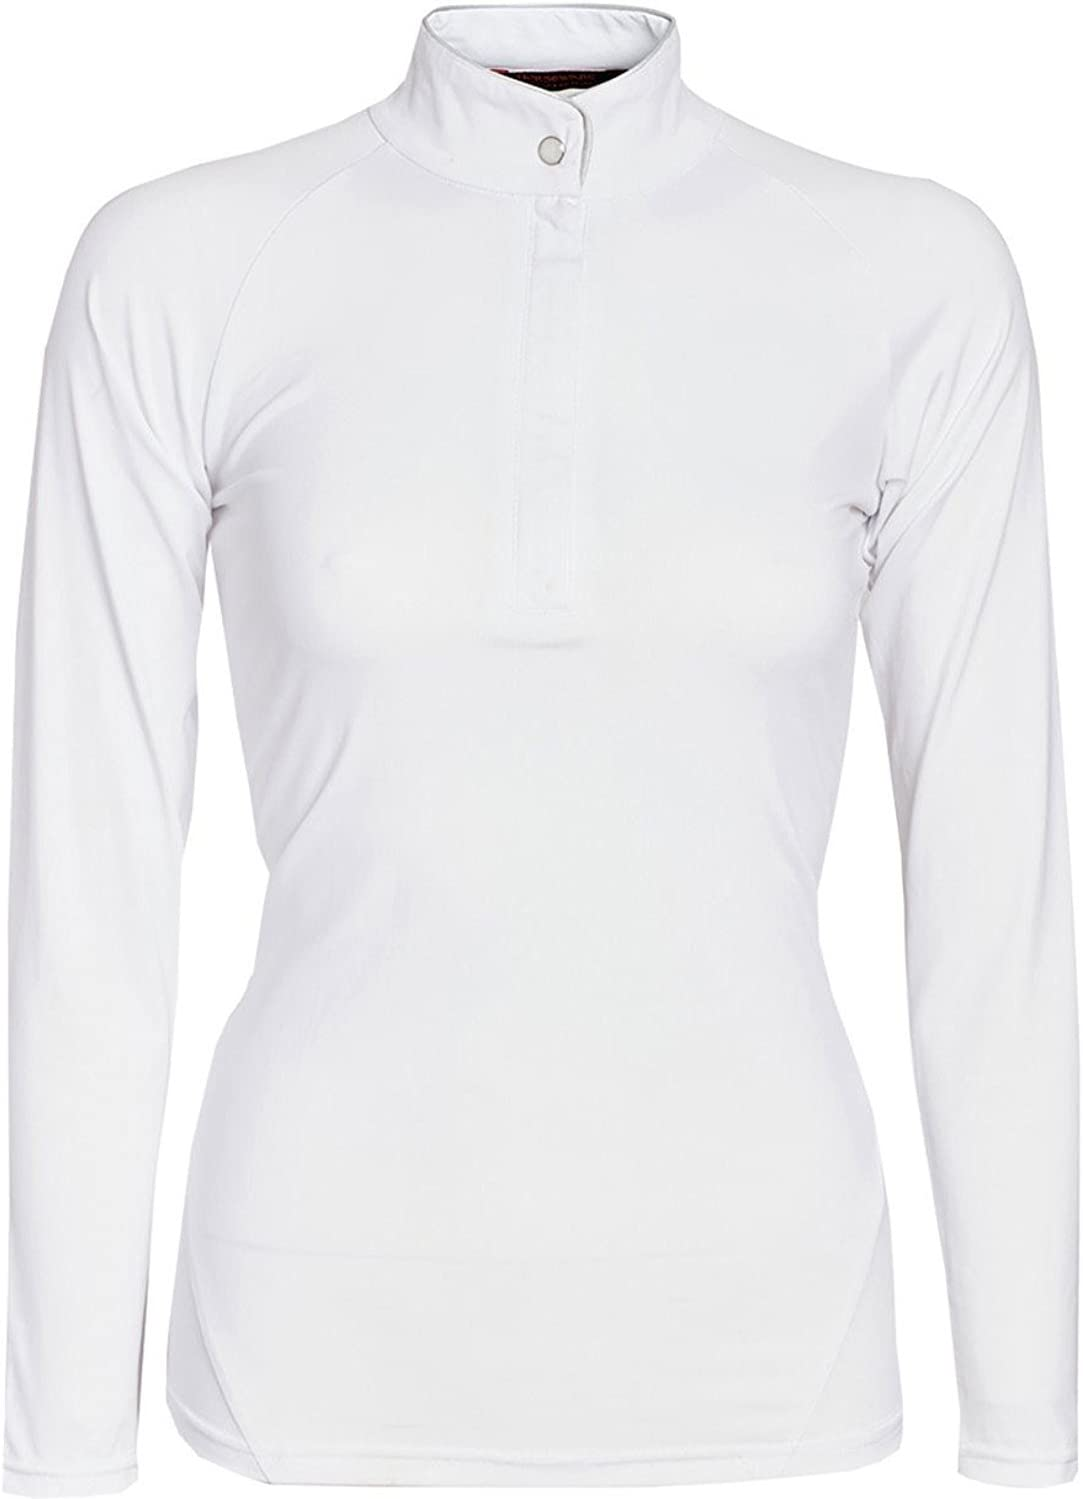 Horseware Ladies Sara Competition Long Sleeve Shirt Top Clothing